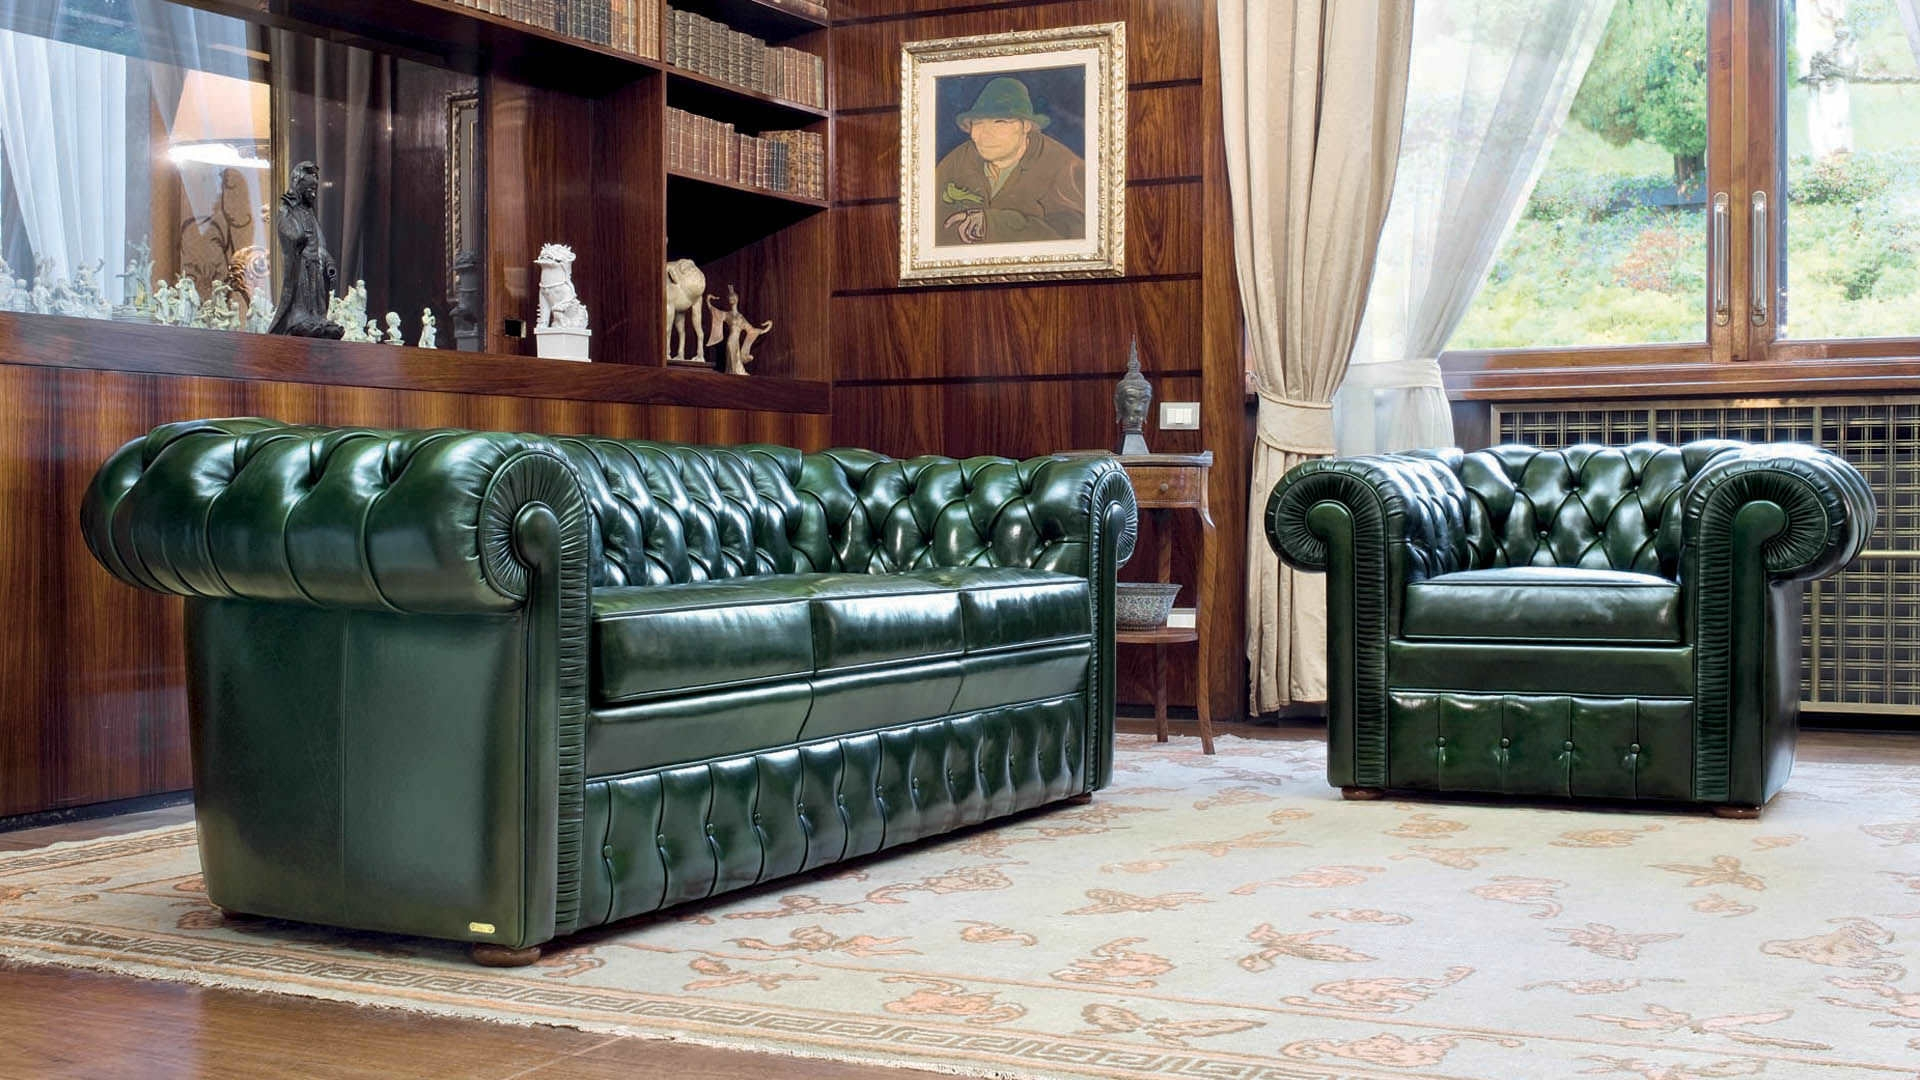 Chesterfield Sofa Leather 3 Seater Green Lancaster Inside Leather Chesterfield Sofas (Image 7 of 15)